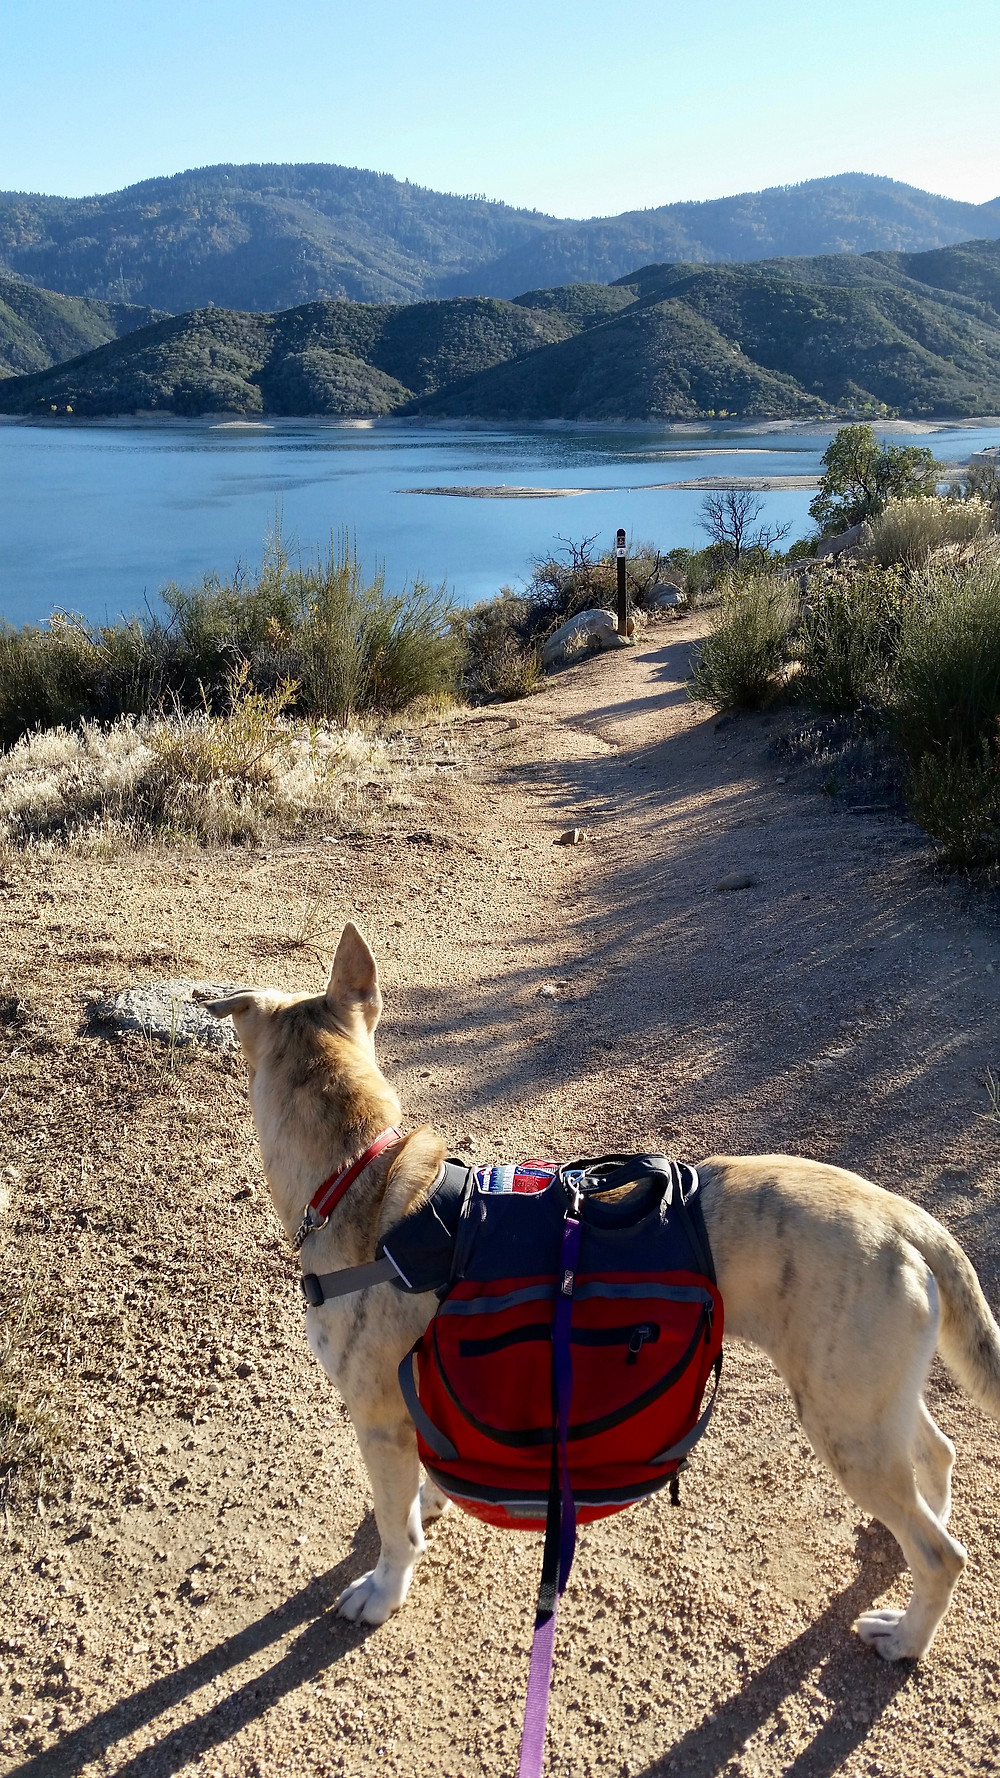 A dog wering a red pack stands on the dirt trail overlooking a sparkling blue lake with rolling green hills in the background.